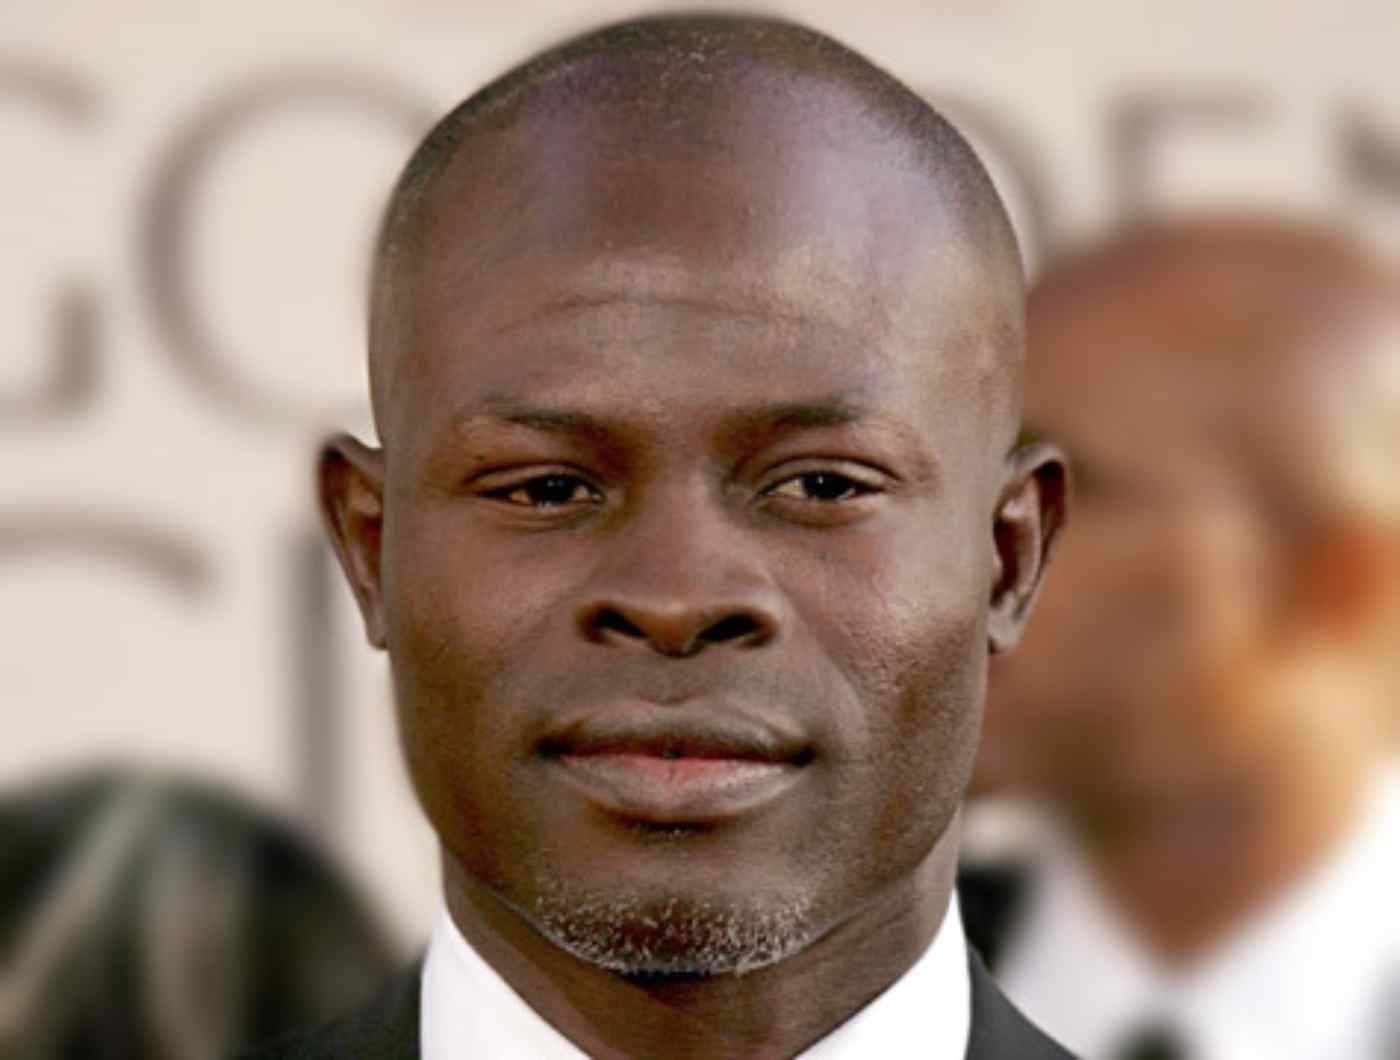 djimon hounsou brad pittdjimon hounsou instagram, djimon hounsou movies, djimon hounsou height, djimon hounsou foto, djimon hounsou filmleri, djimon hounsou bodybuilding, djimon hounsou calvin klein, djimon hounsou net worth, djimon hounsou brad pitt, djimon hounsou photo gallery, djimon hounsou kimora lee simmons, djimon hounsou vikipedi, djimon hounsou, djimon hounsou wife, djimon hounsou wiki, djimon hounsou workout, djimon hounsou martial arts, djimon hounsou fast and furious 7, djimon hounsou wikipedia, djimon hounsou model